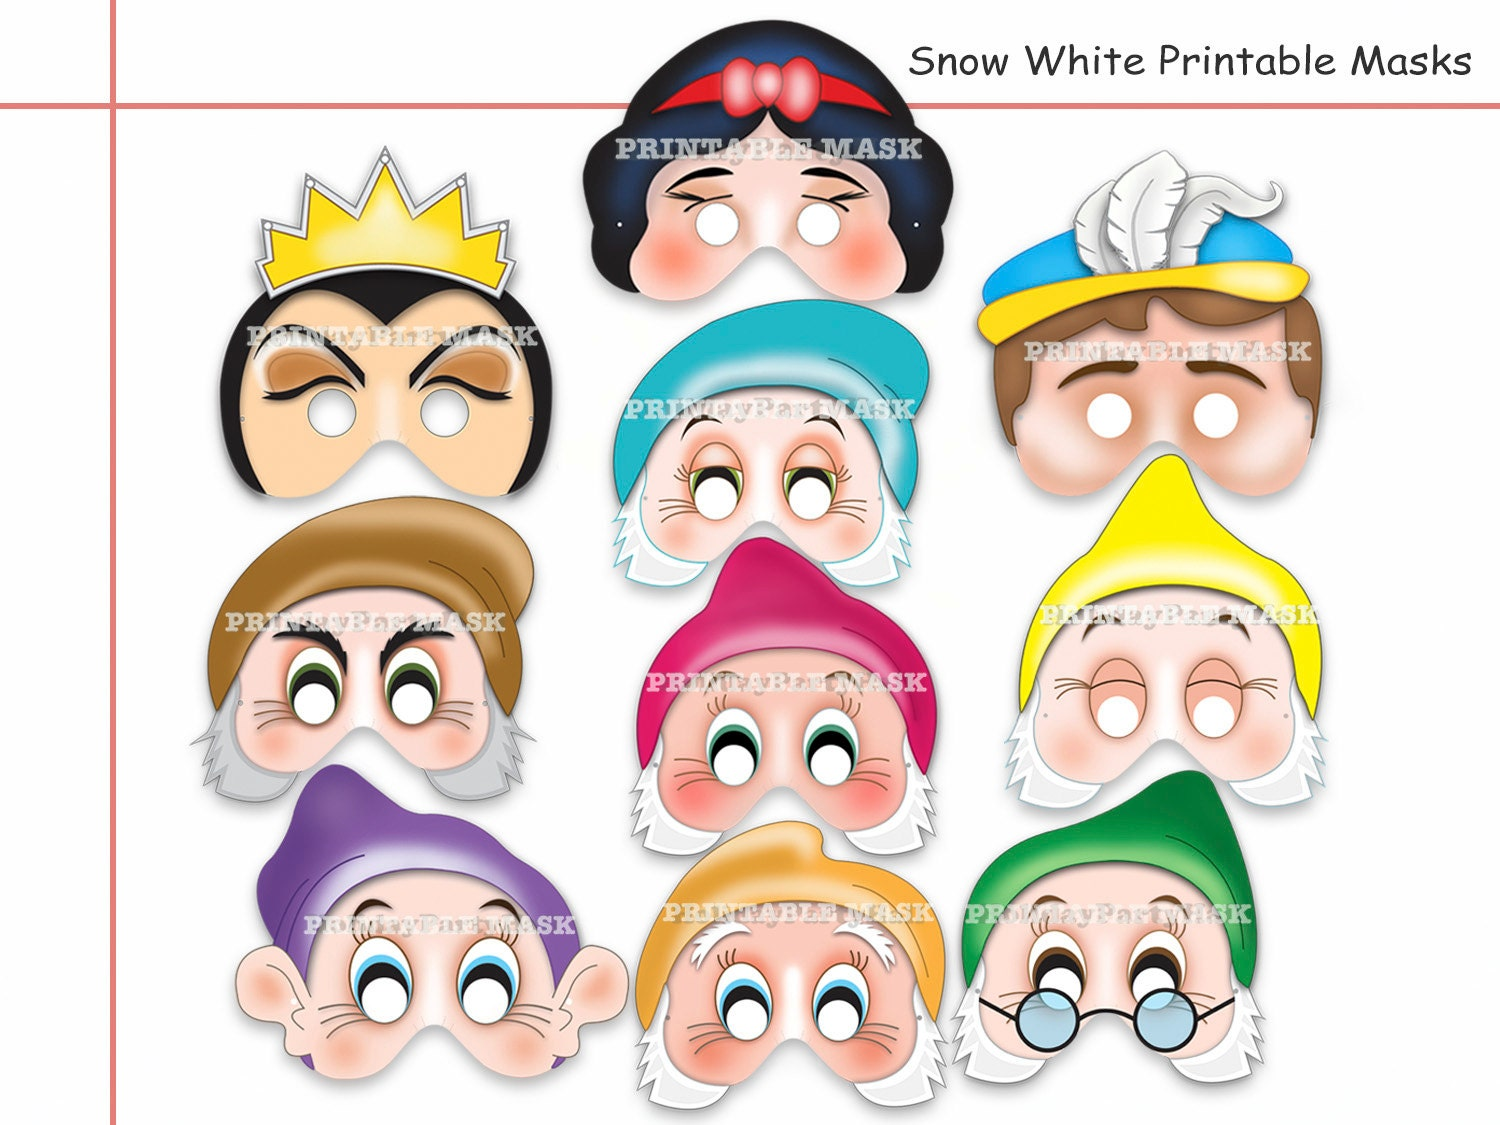 Unique Snow White And The Seven Dwarves Printable Masks party